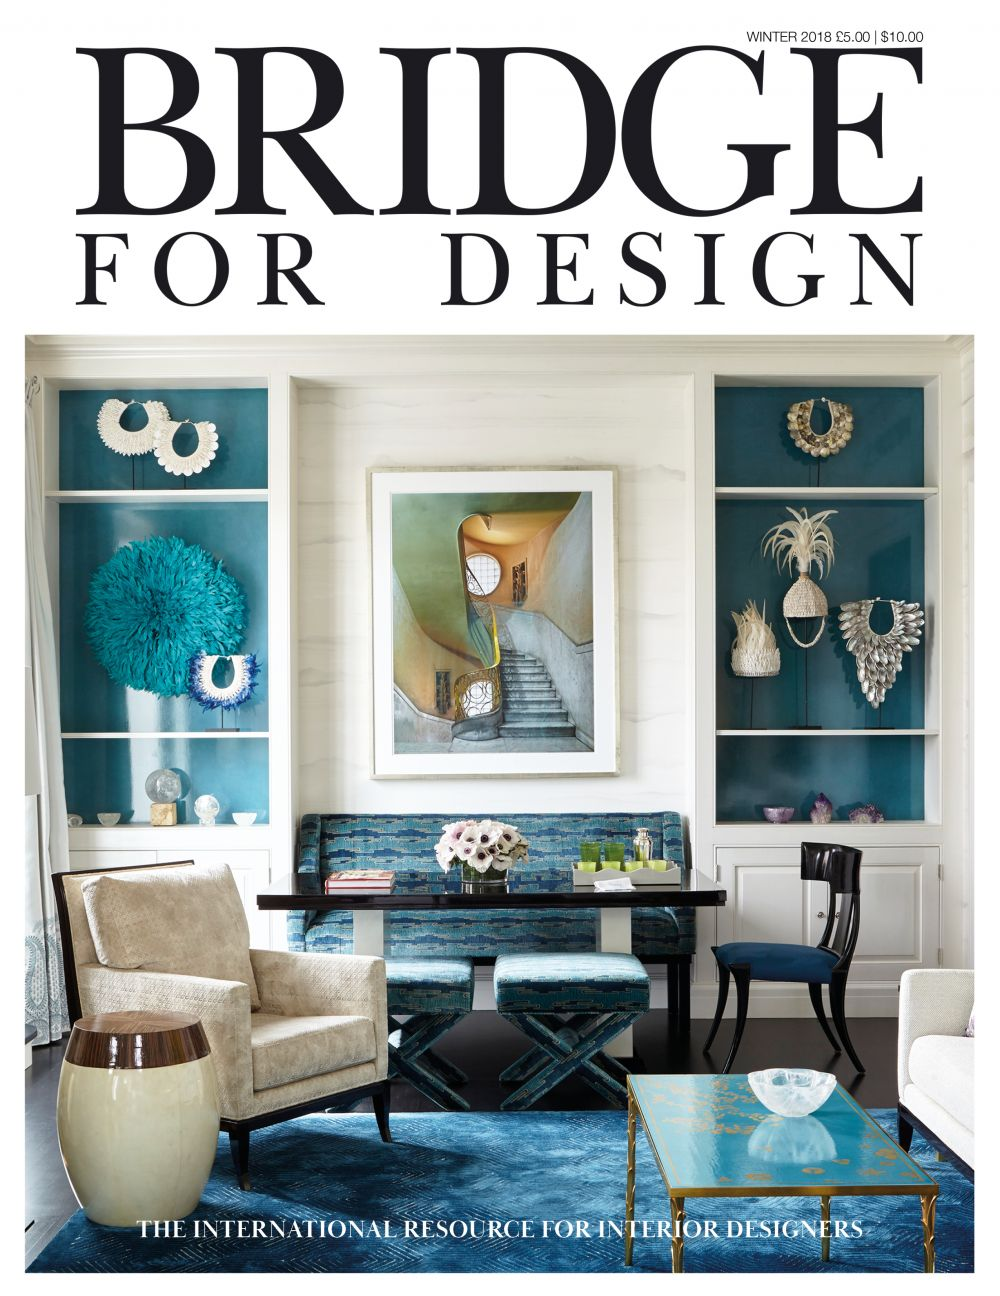 The Top 10 Interior Design Magazines You Should Read 9 Interior Design Magazines The Top 10 Interior Design Magazines You Should Read The Top 10 Interior Design Magazines You Should Read 9